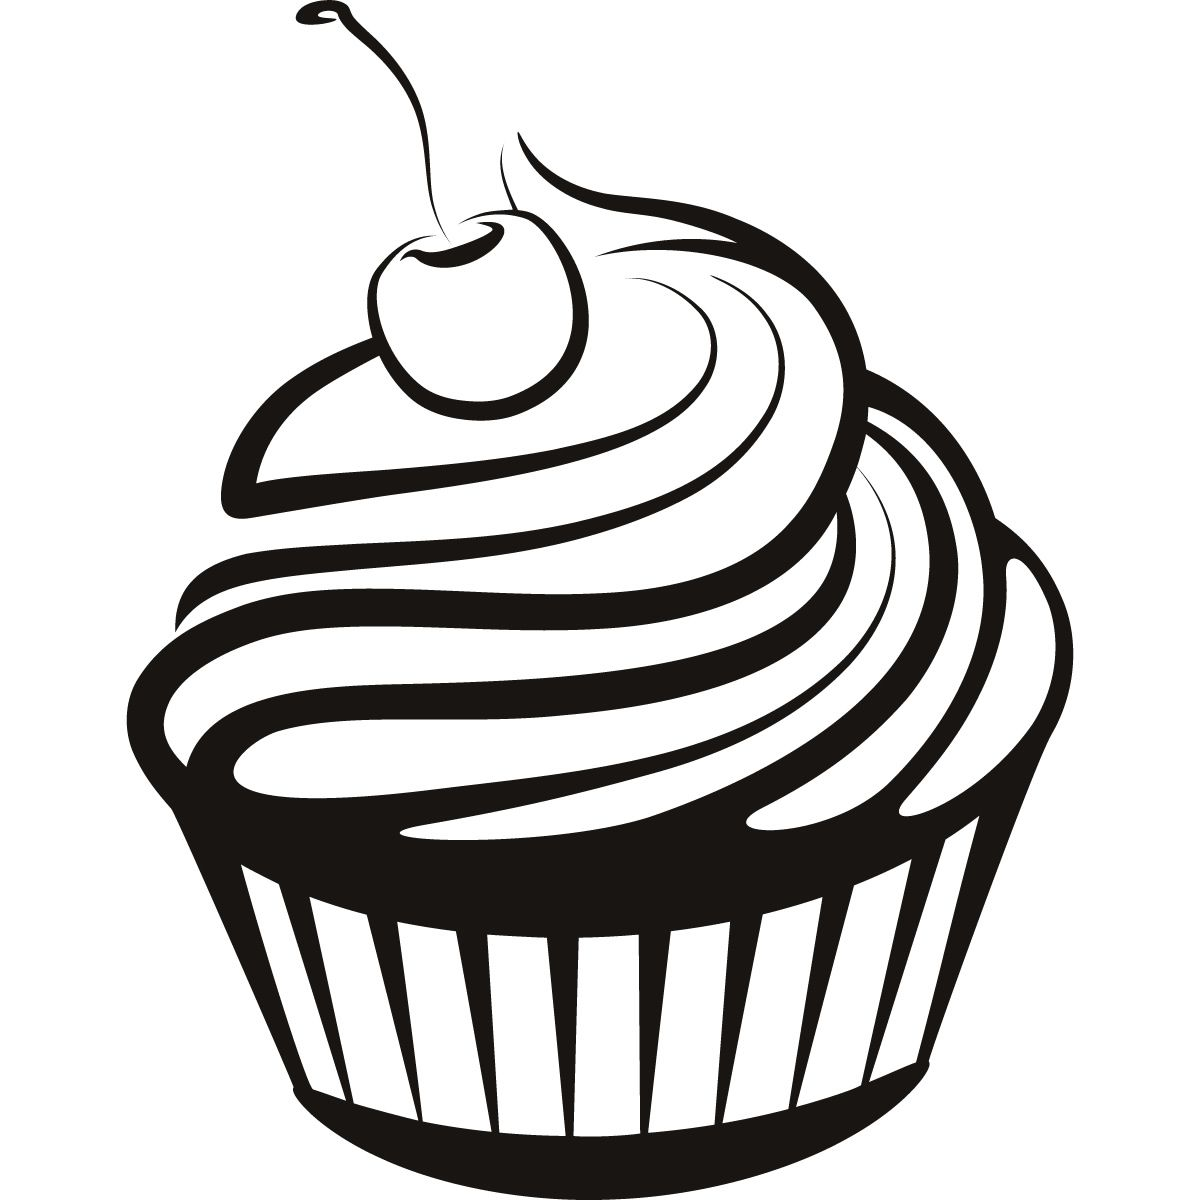 Cupcake black and white cupcake drawings and cupcakes clipart.